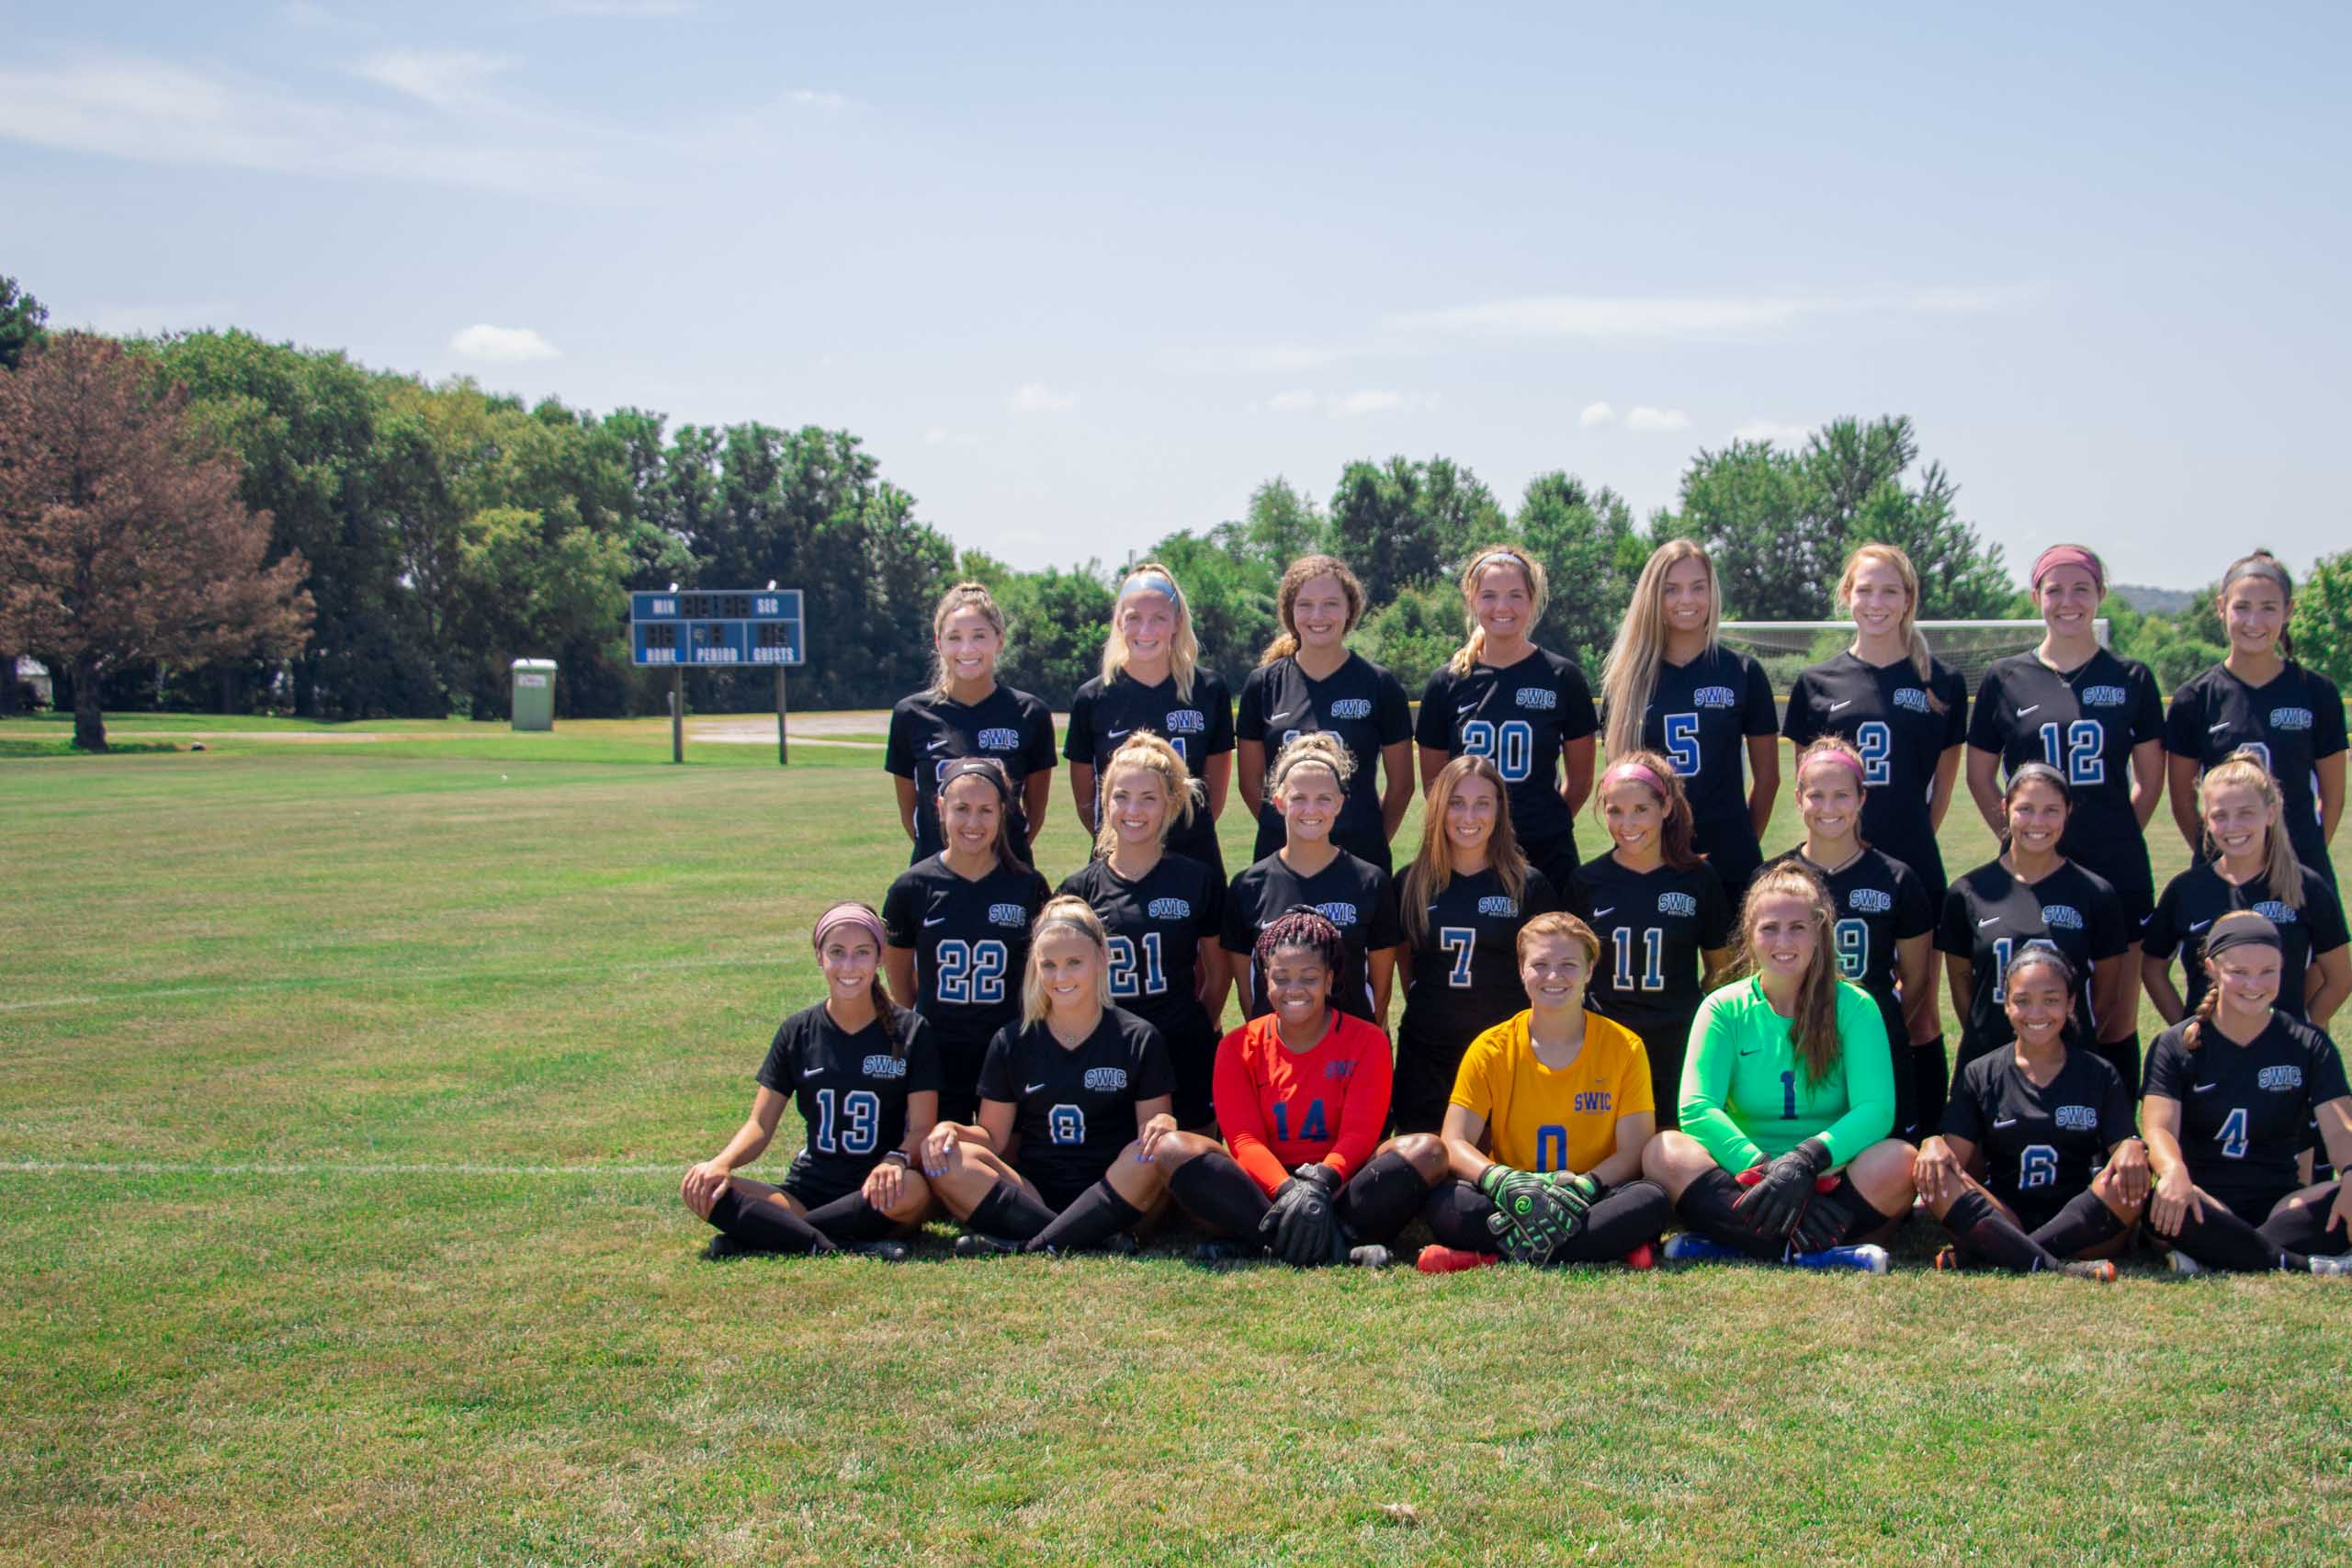 A group photo of the women's soccer team.